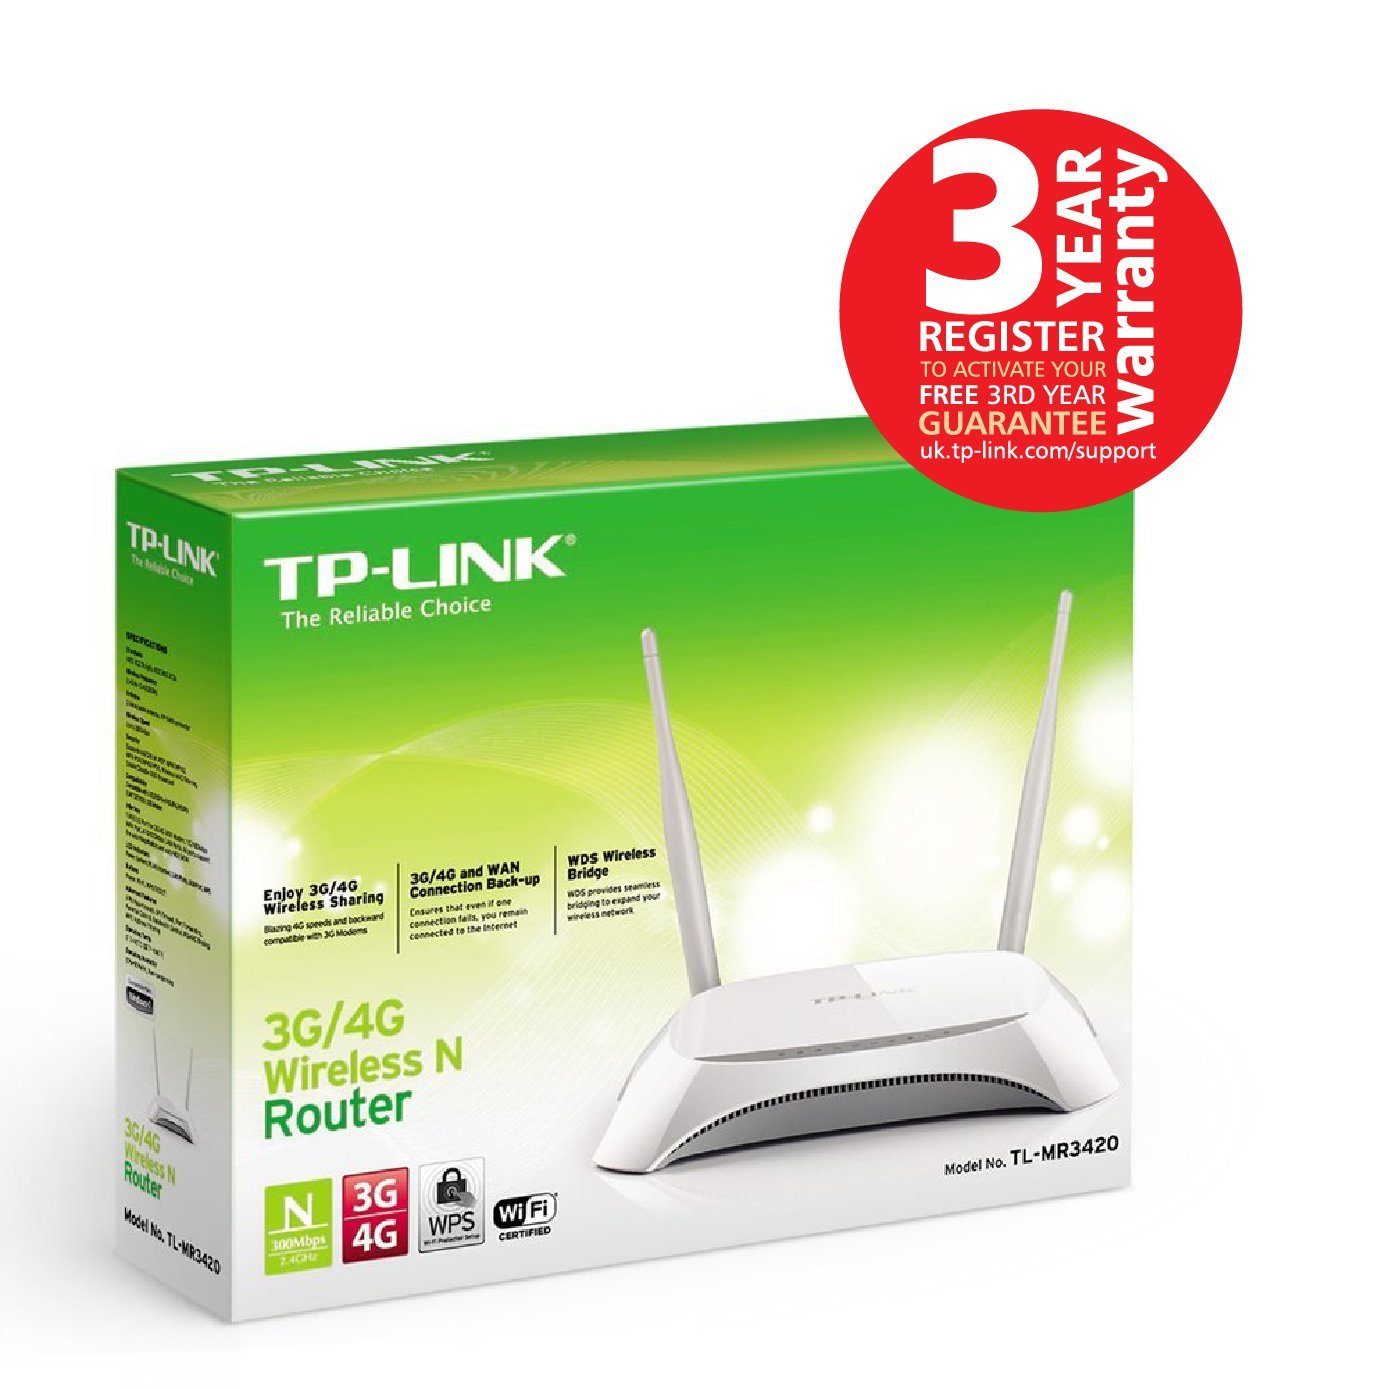 TP-LINK TL-MR3420 300 Mbps 3G Routers Wifi Router